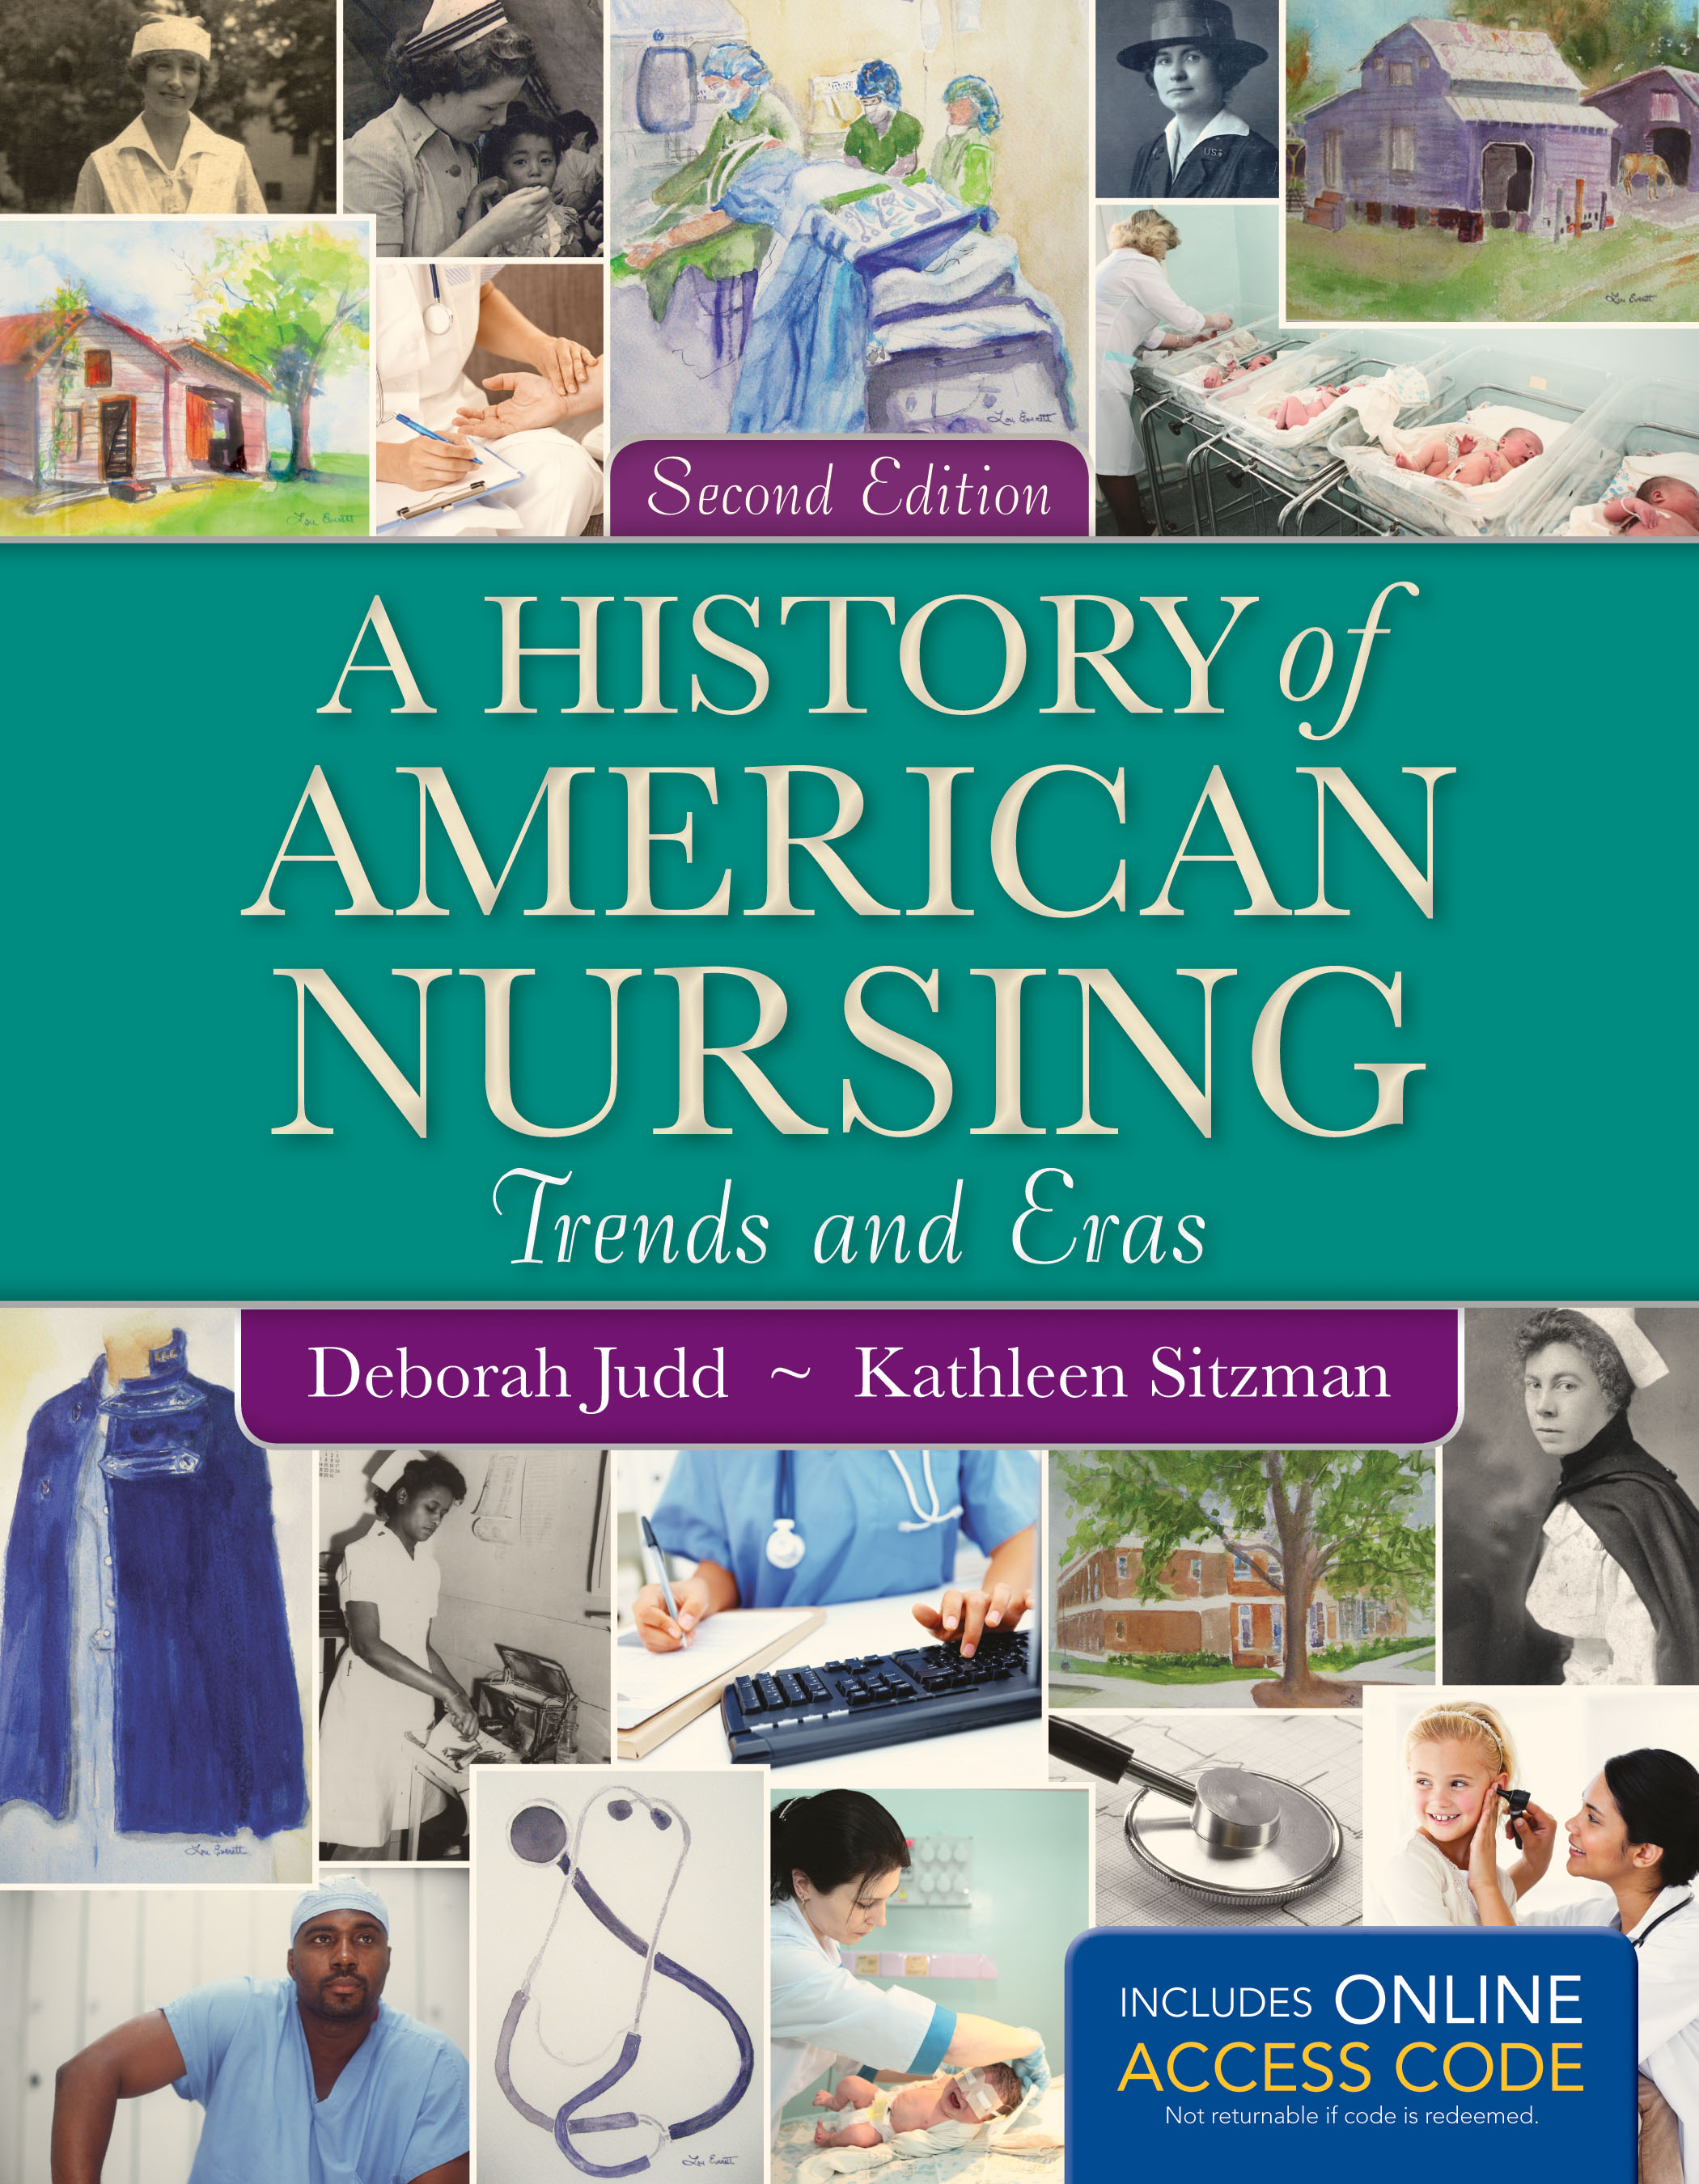 A History of American Nursing - EXPLORE NURSING IN THIS STREAMLINED FORMATThis book presents a concise, engaging, easy-to-follow history of American nursing.Buy Now from Publisher (20% off Coupon Code: HISTORY20)Click HERE to download the Publisher's FlyerBuy Now from Amazon